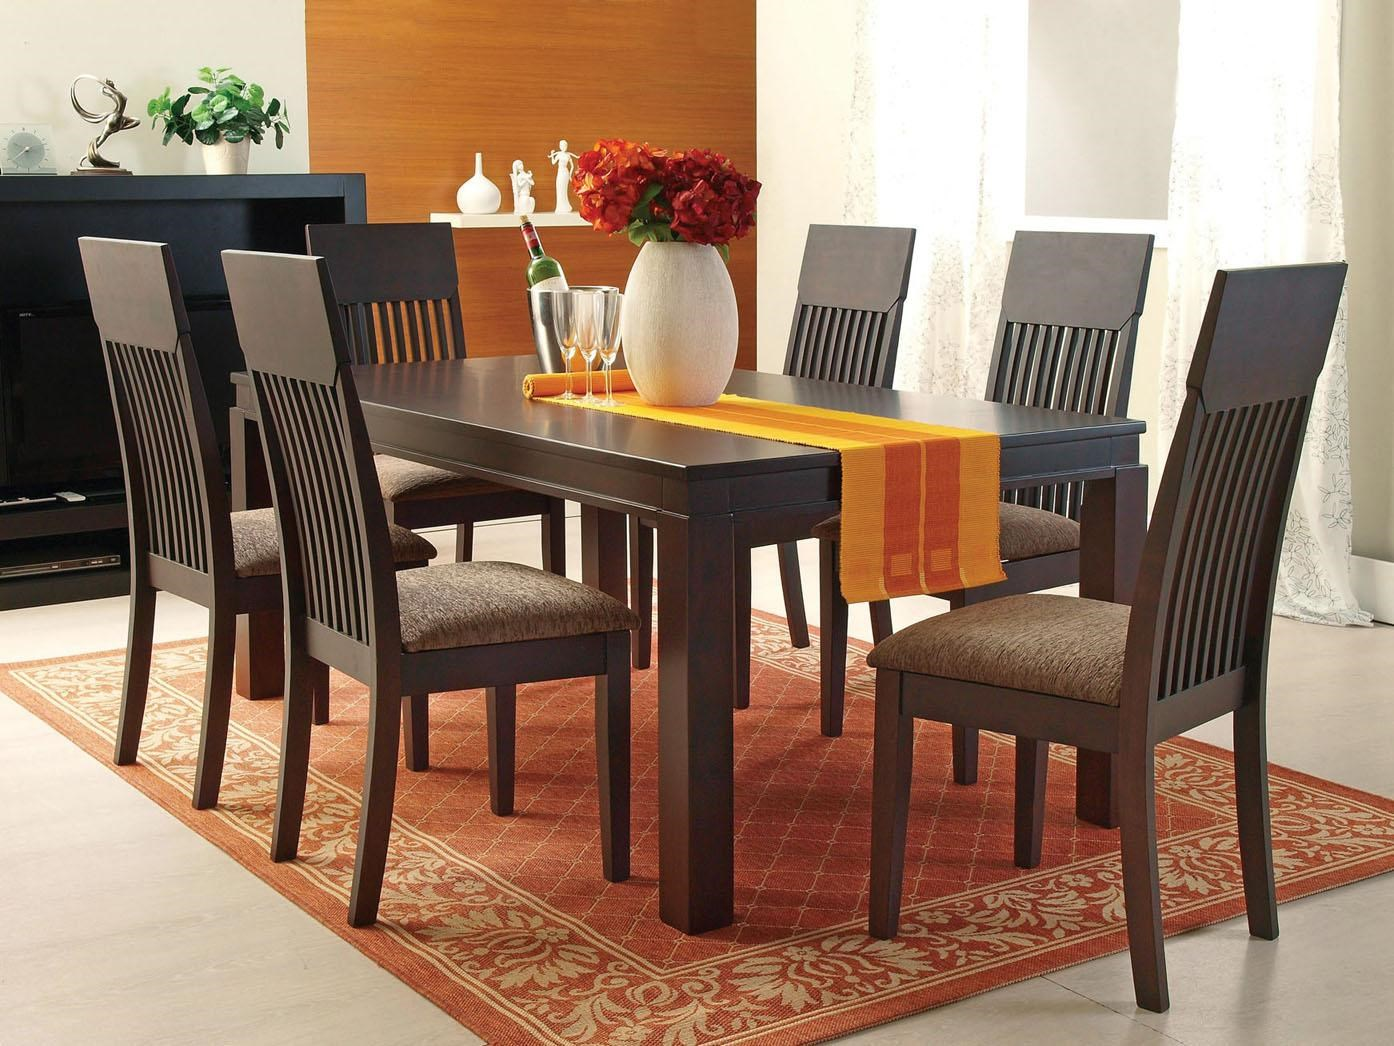 Acme Furniture Medora Casual 7 Piece Mission Style Dining Table And Chair  Set Part 64